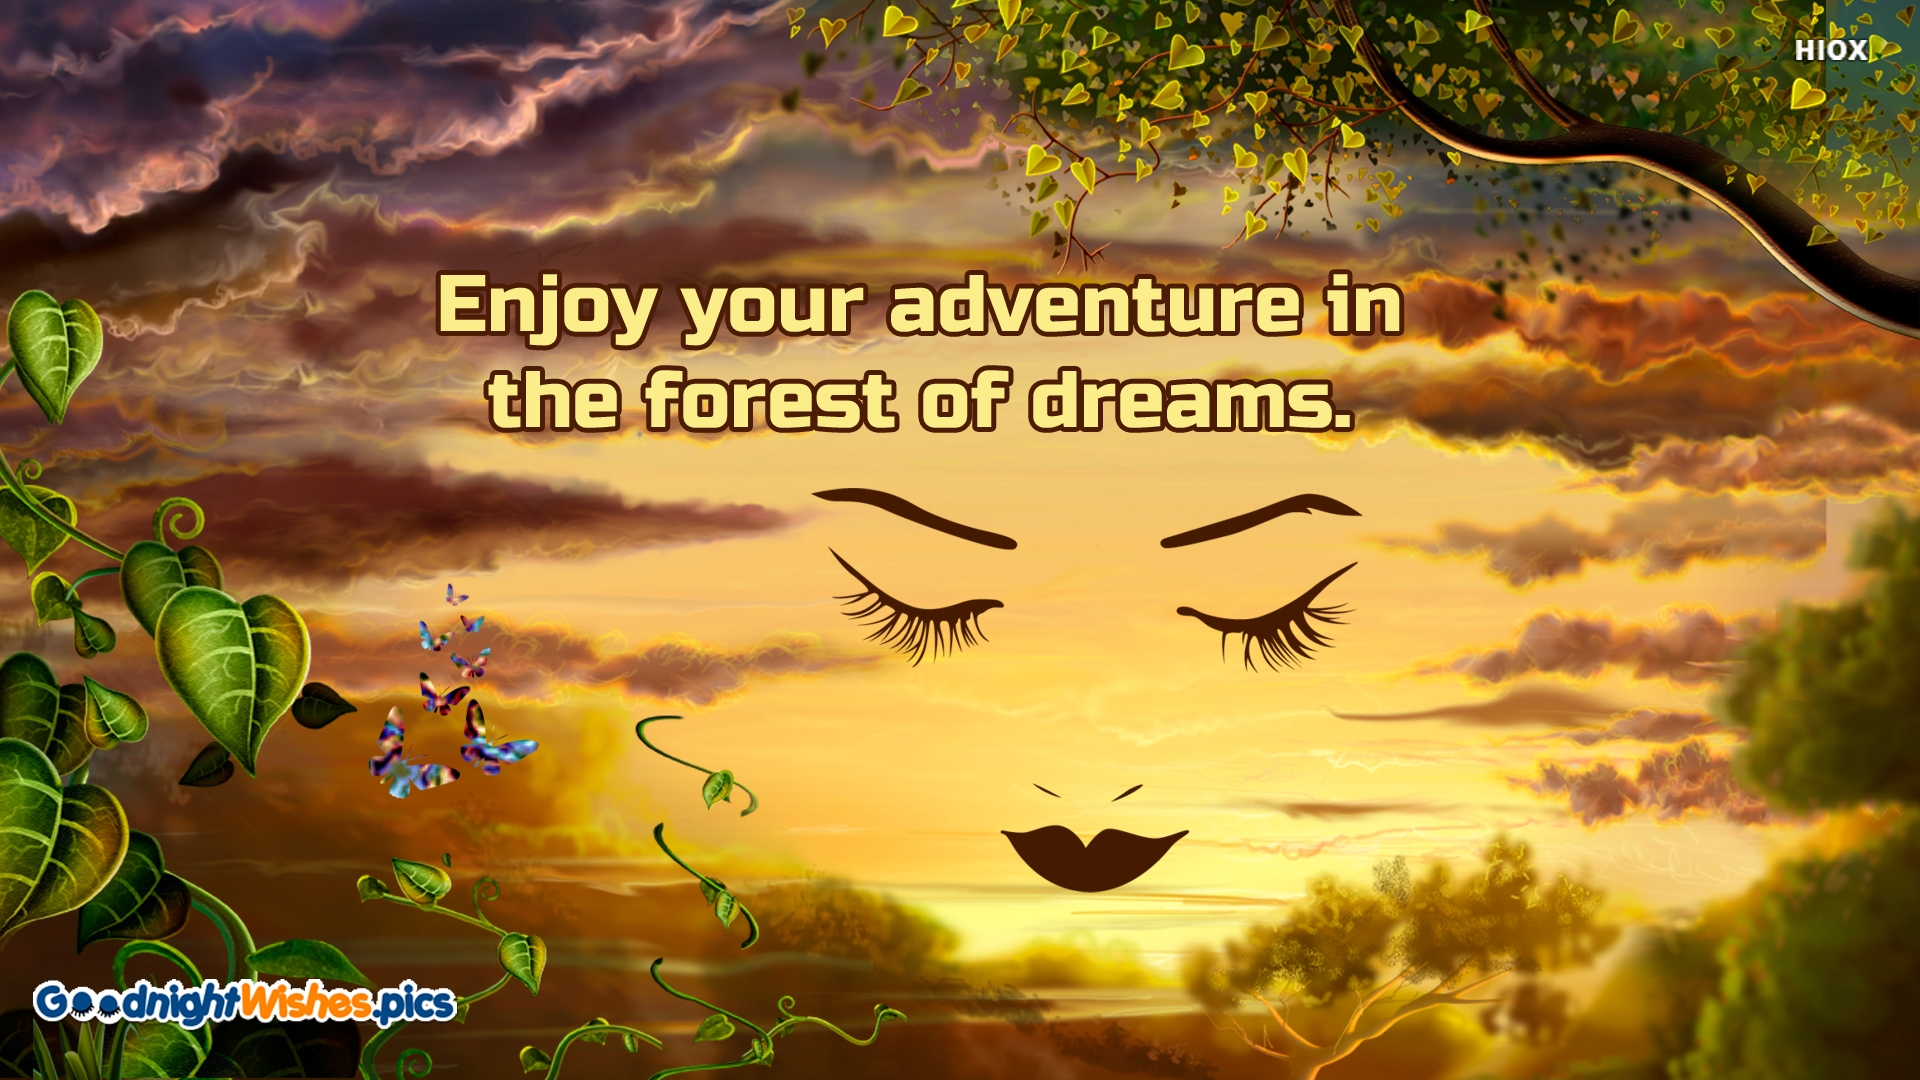 Enjoy Your Adventure In The Forest Of Dreams.